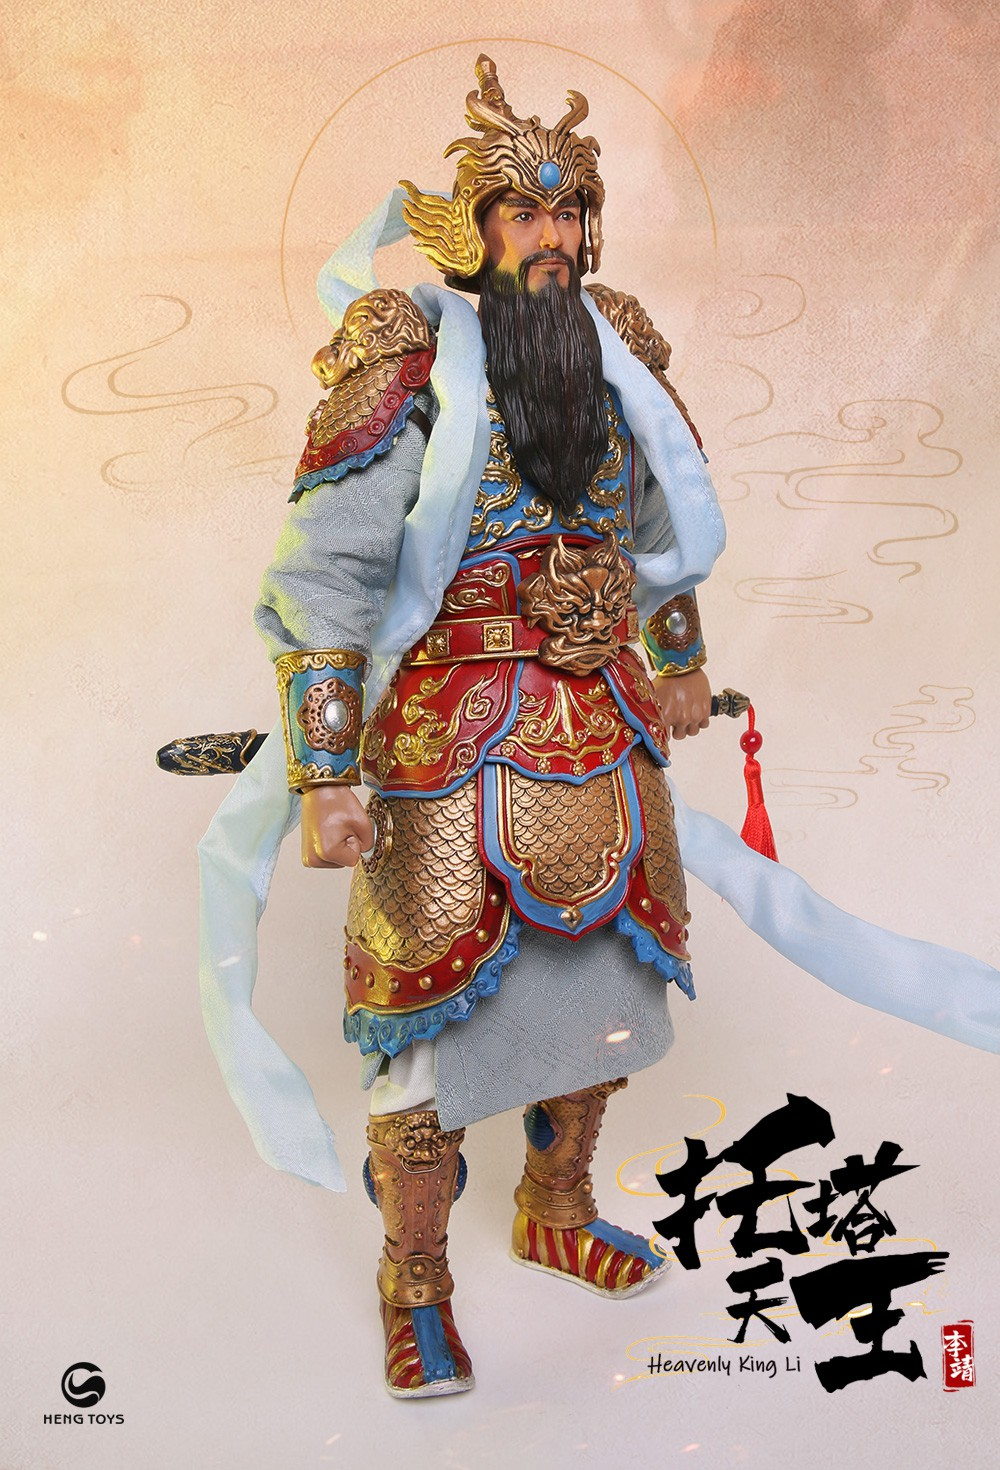 NEW PRODUCT: HENG TOYS: 1/6 Chinese Mythology Taoist Protector God Heavenly King Li, Li Tianwang action figure (PE-005) 14032510